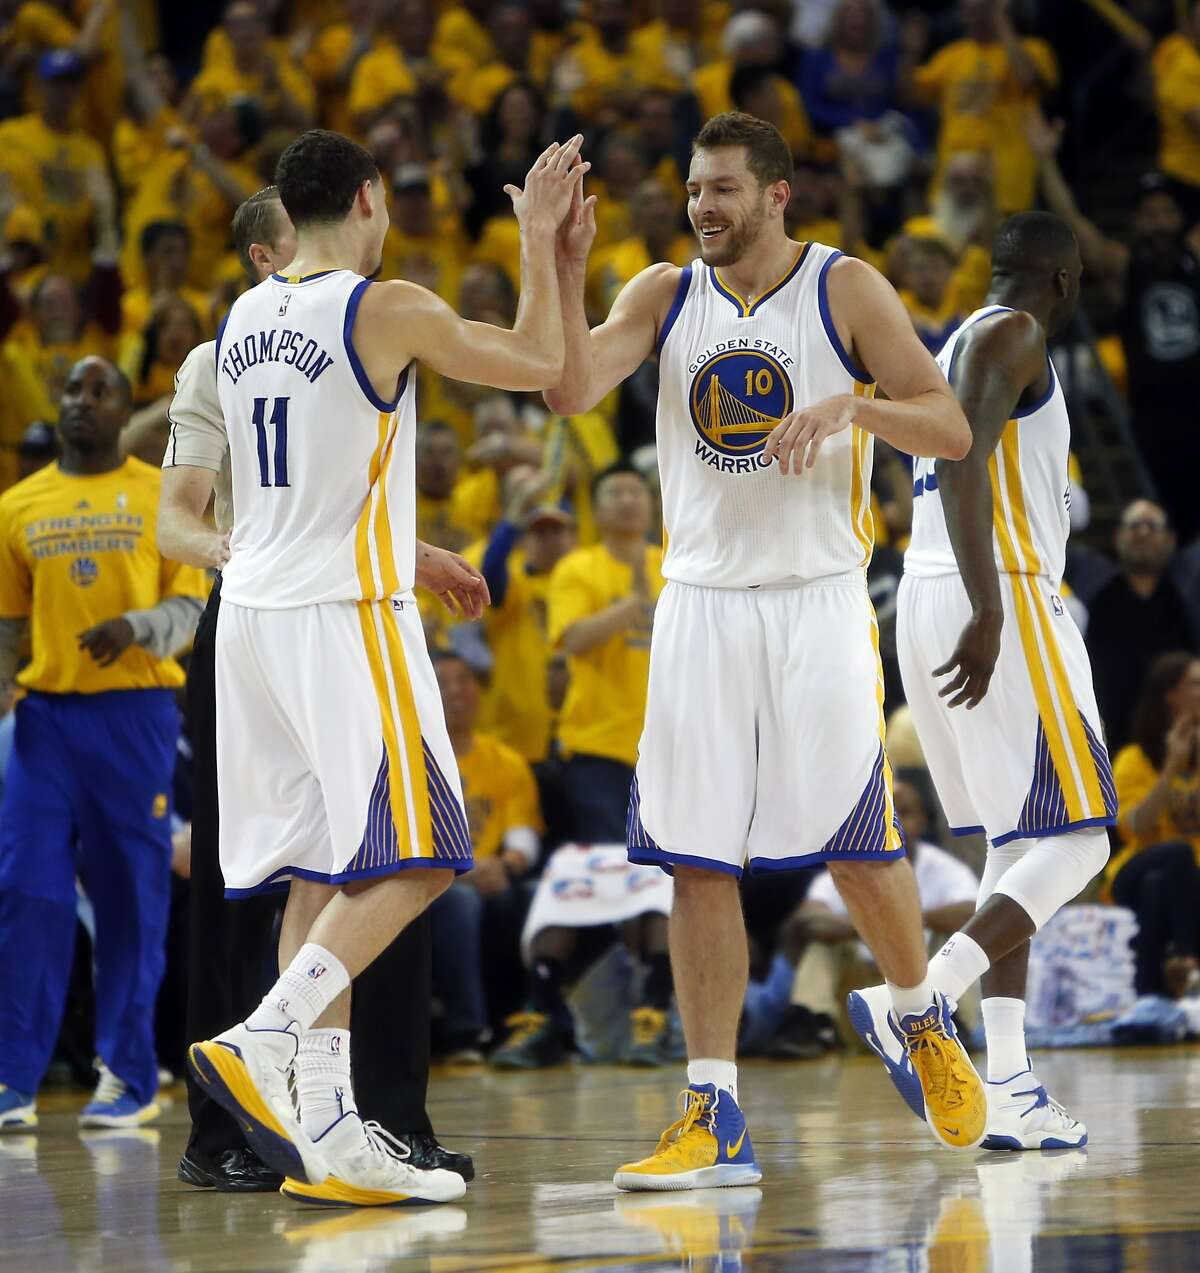 Golden State Warriors' David Lee and Klay Thompson celebrate in 4th quarter during 98-78 win over Memphis Grizzlies during Game 5 of NBA Playoffs' Western Conference Semifinals at Oracle Arena in Oakland, Calif., on Wednesday, May 13, 2015.